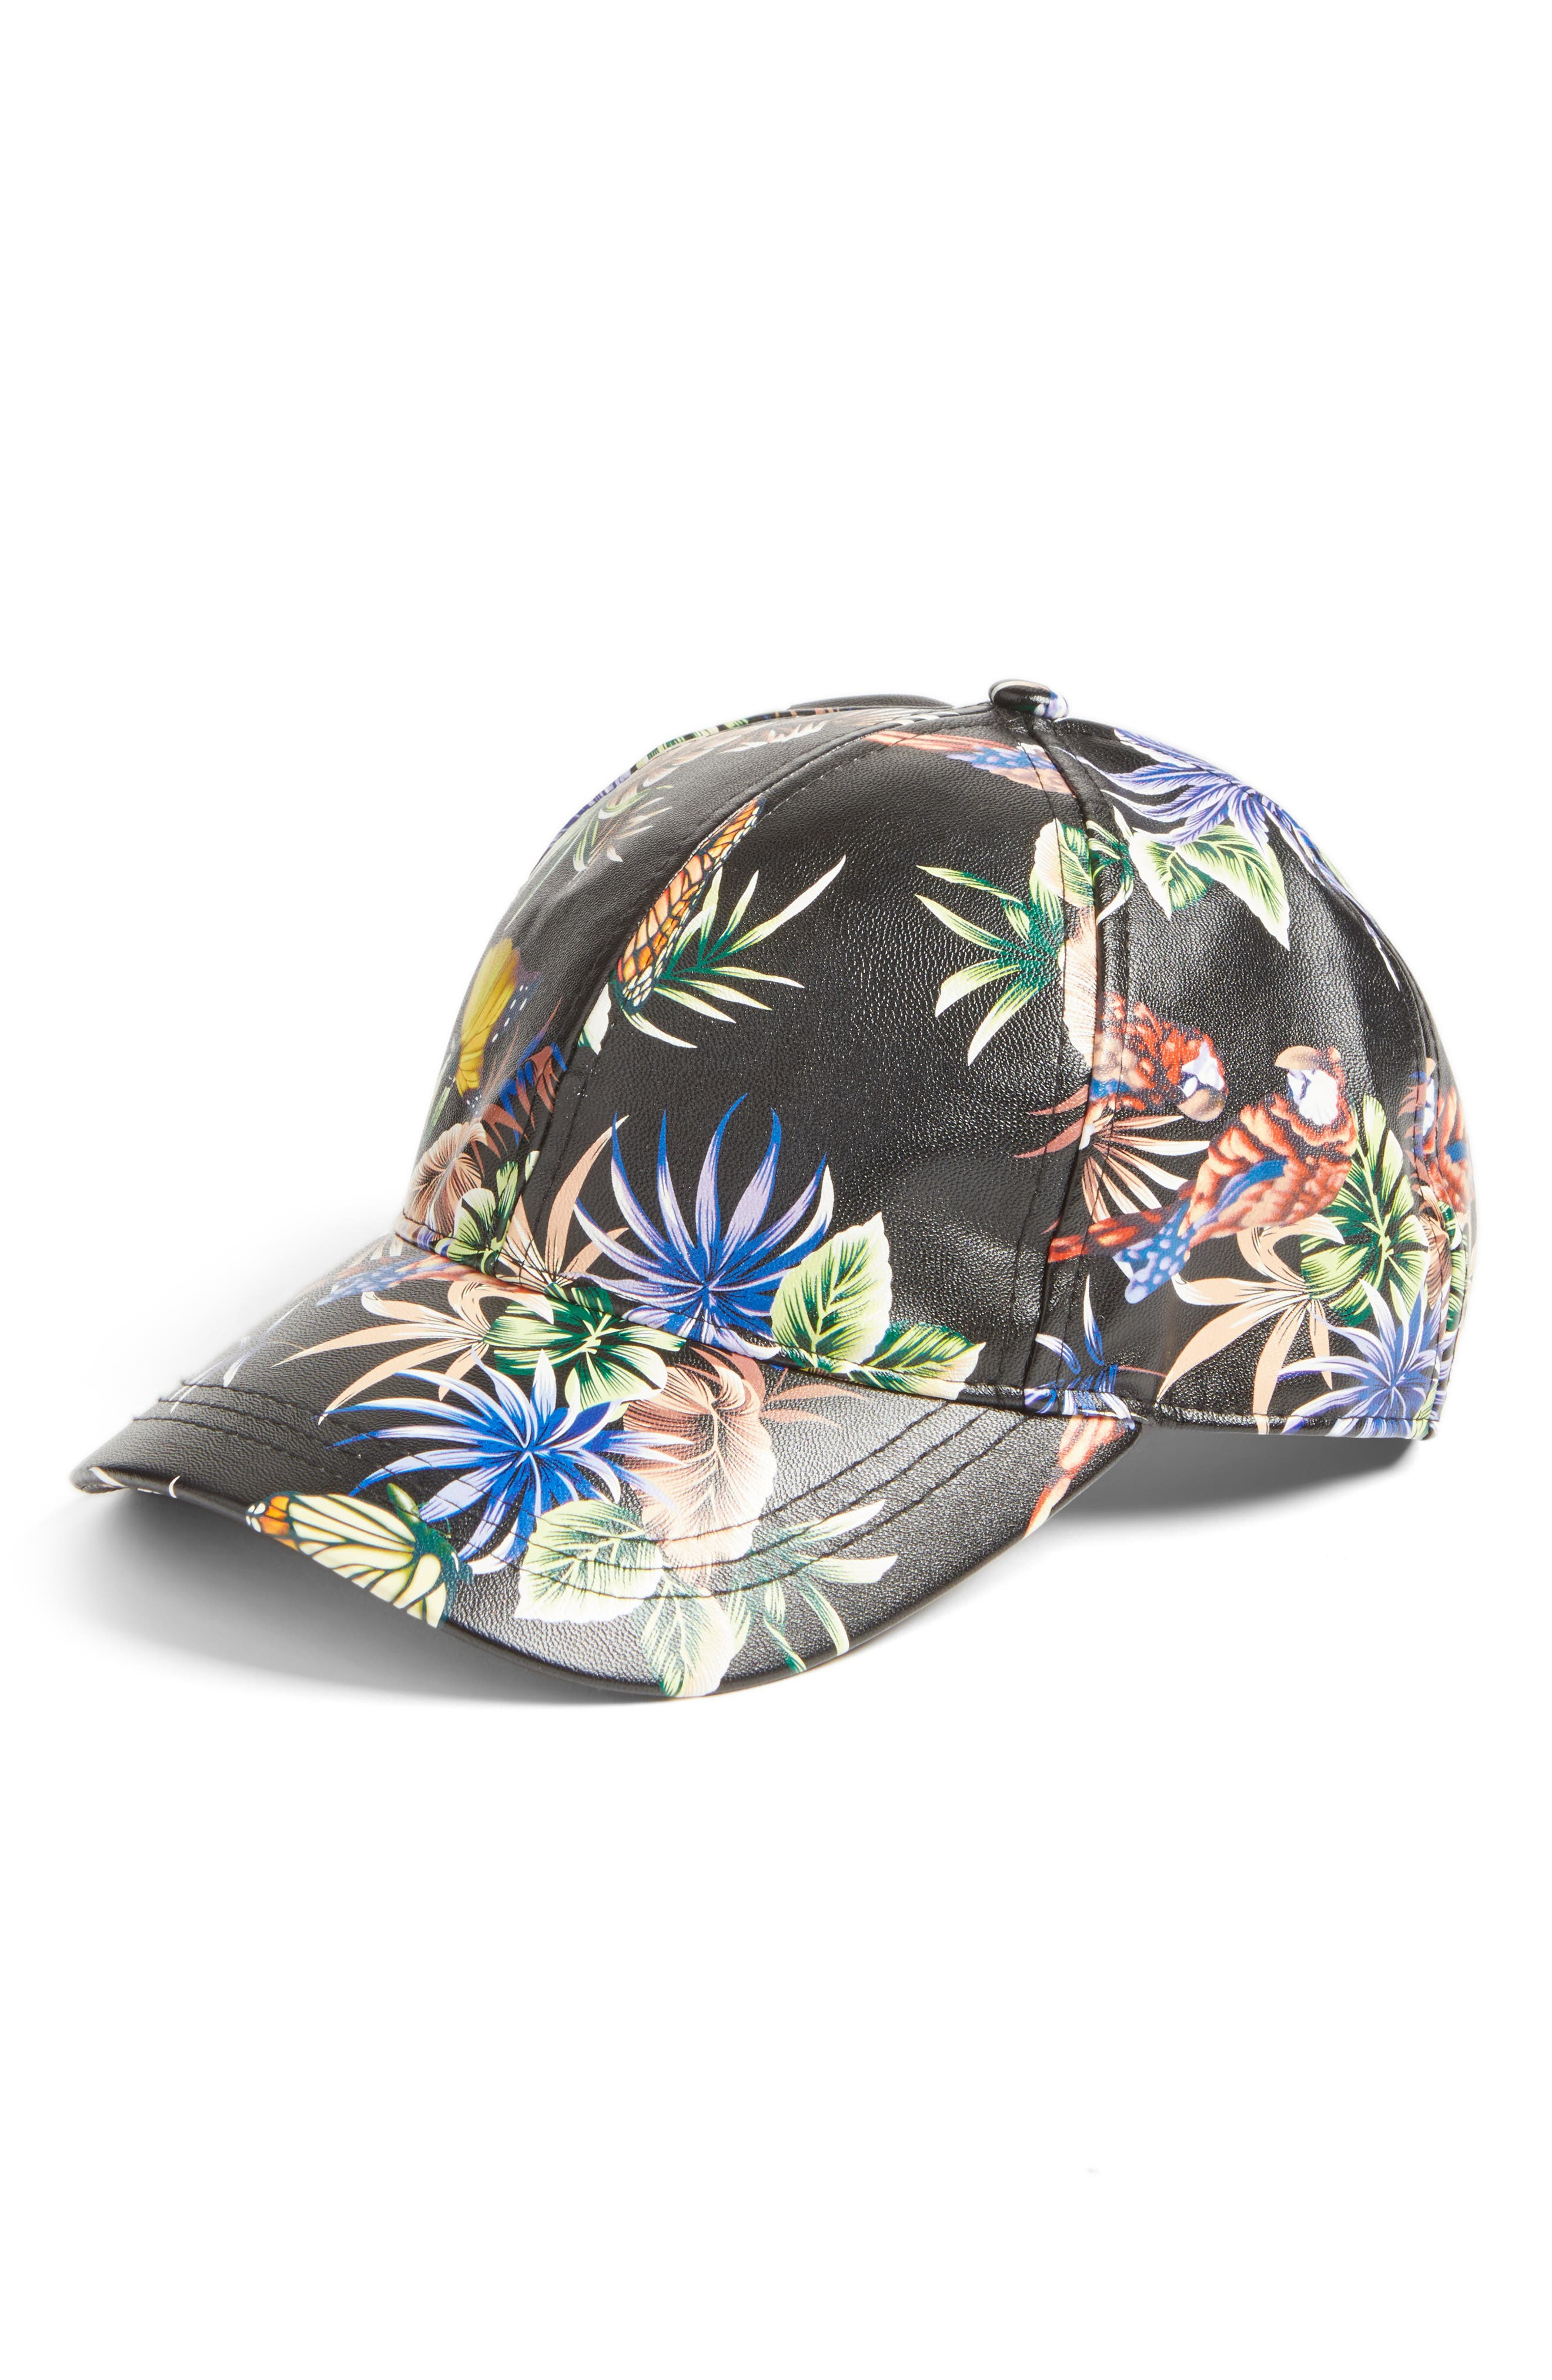 Main Image - August Hat Floral Faux Leather Baseball Cap